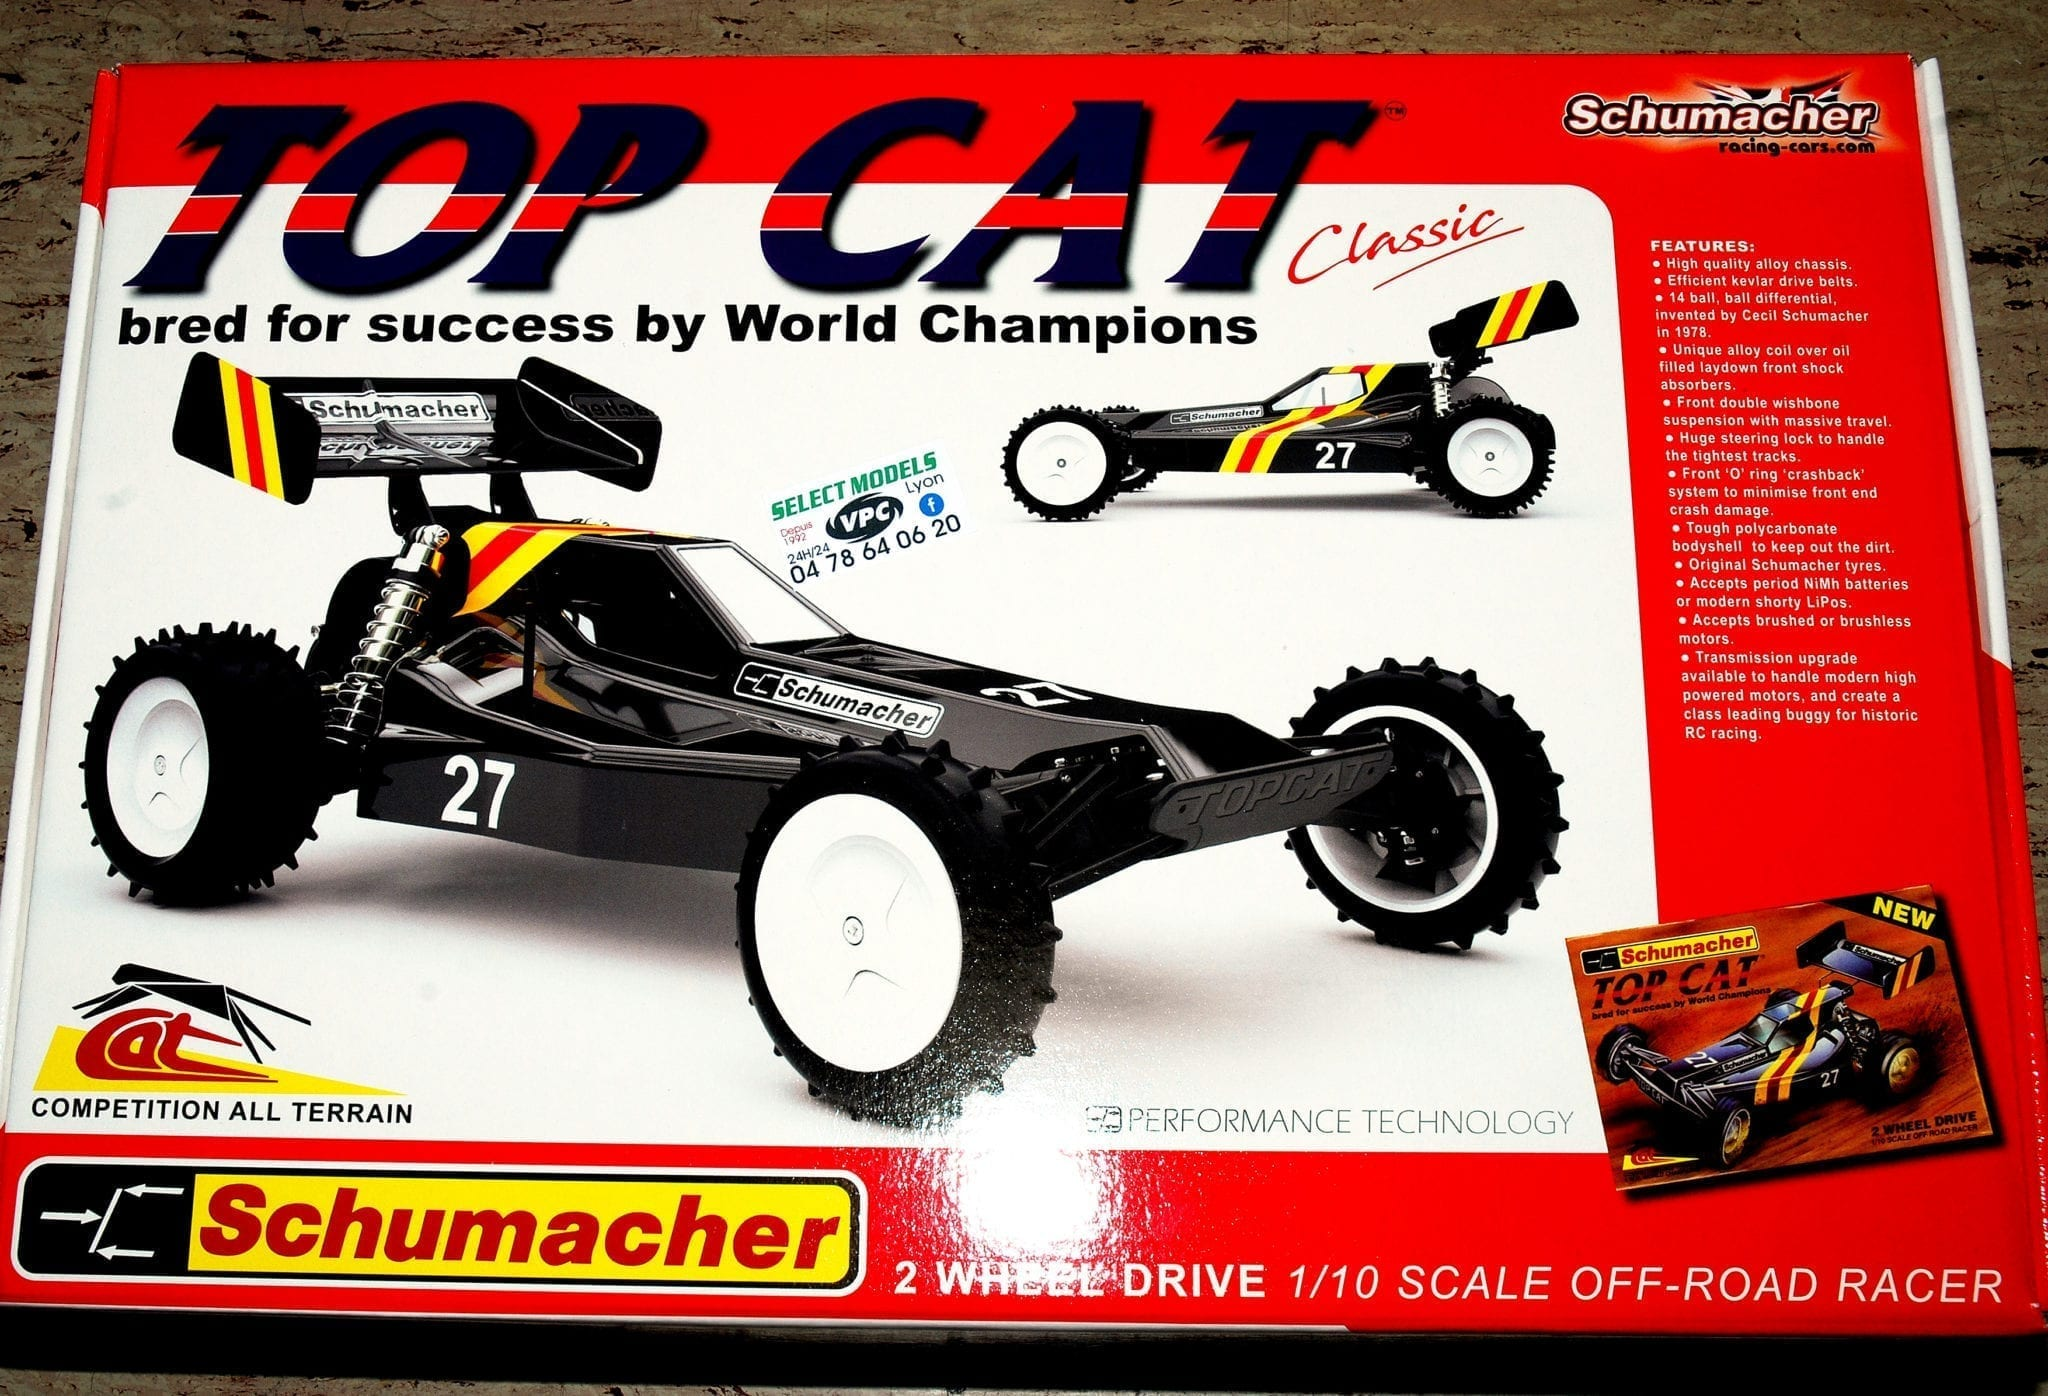 TOP CAT Schumacher